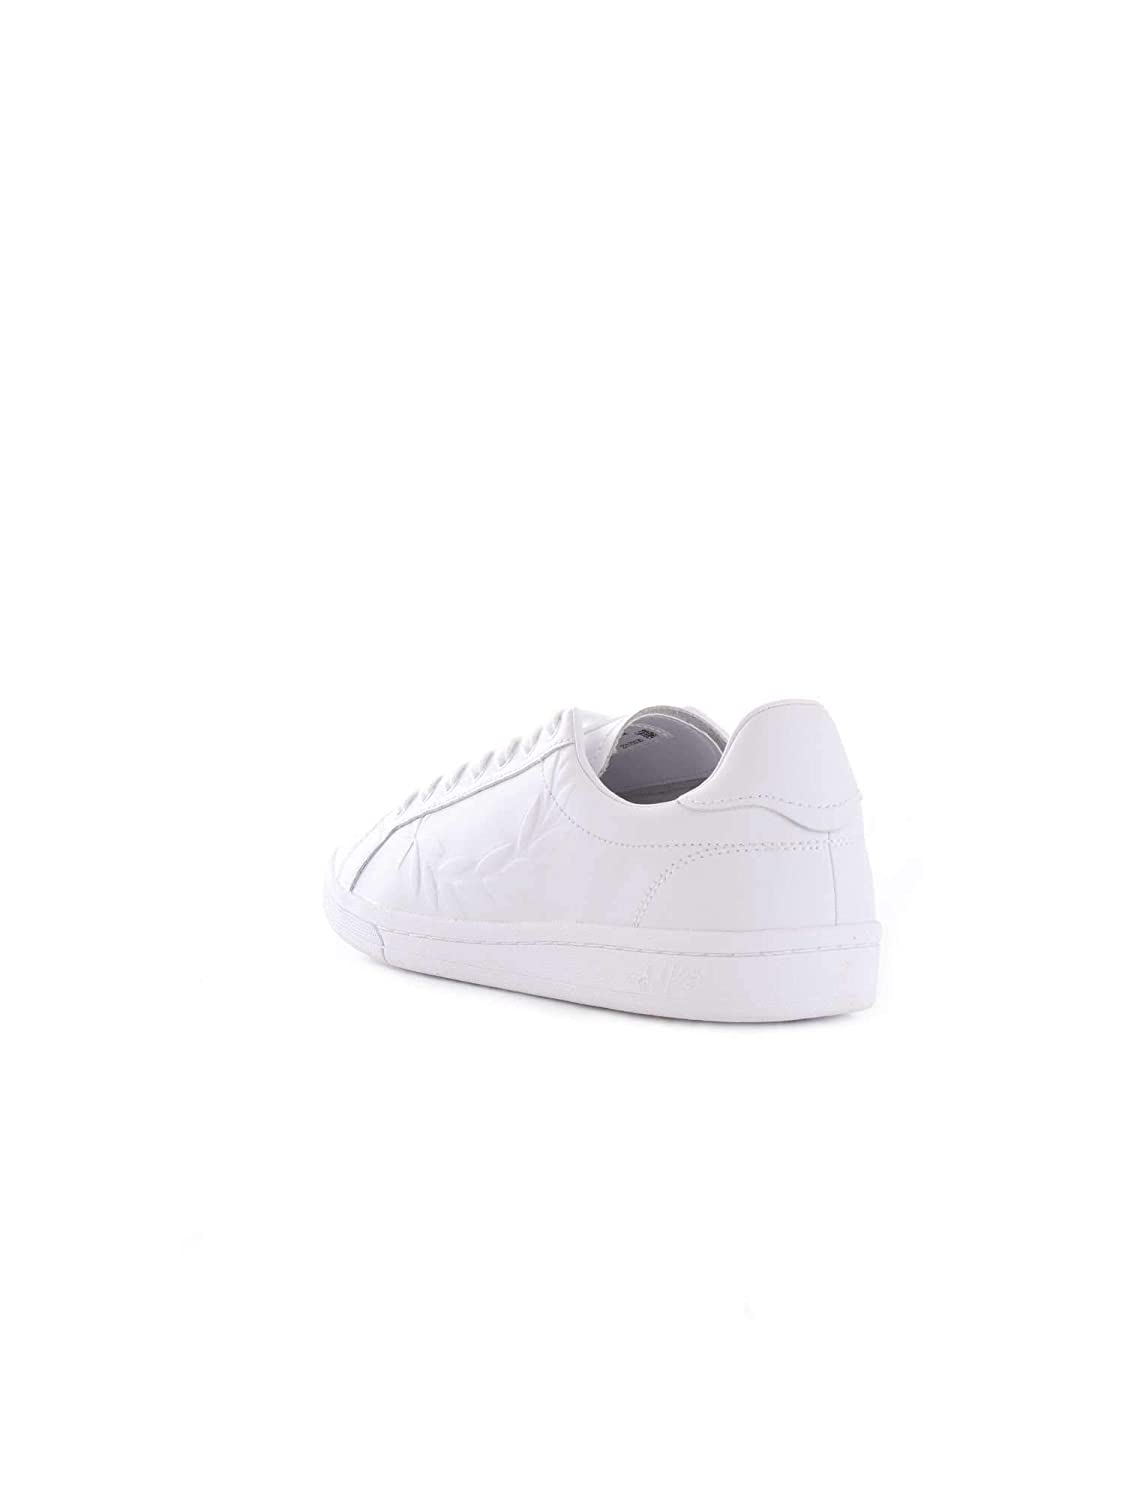 Fred Perry Herren B5150WHITE Weiss Leder Sneakers: